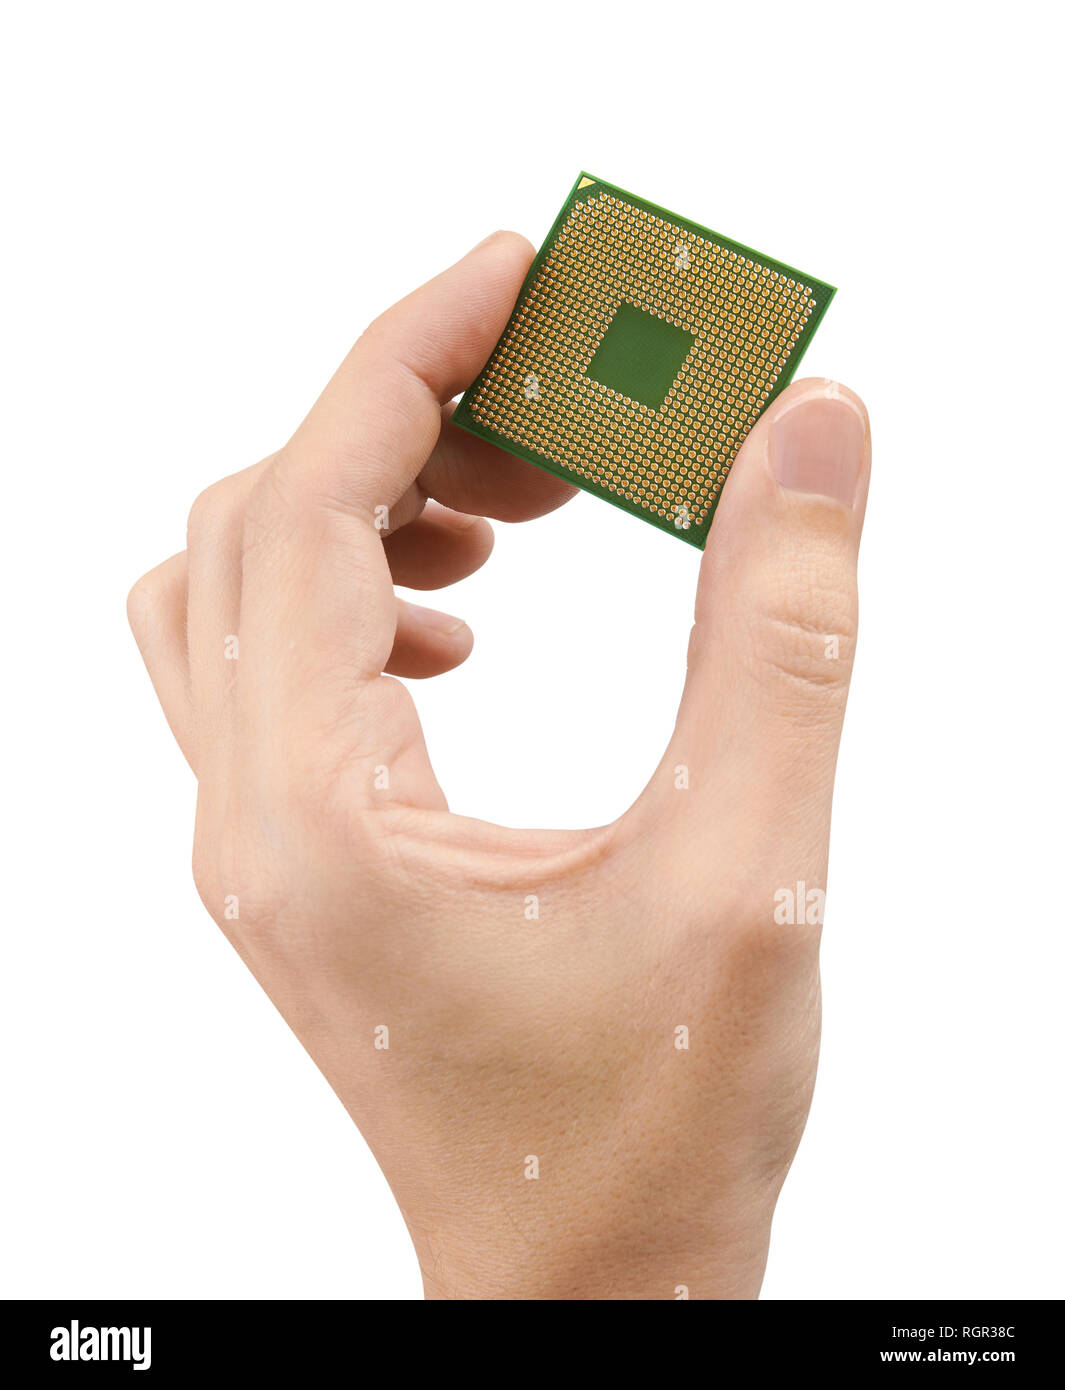 Computer processors CPU in hand, isolated on white background - Stock Image